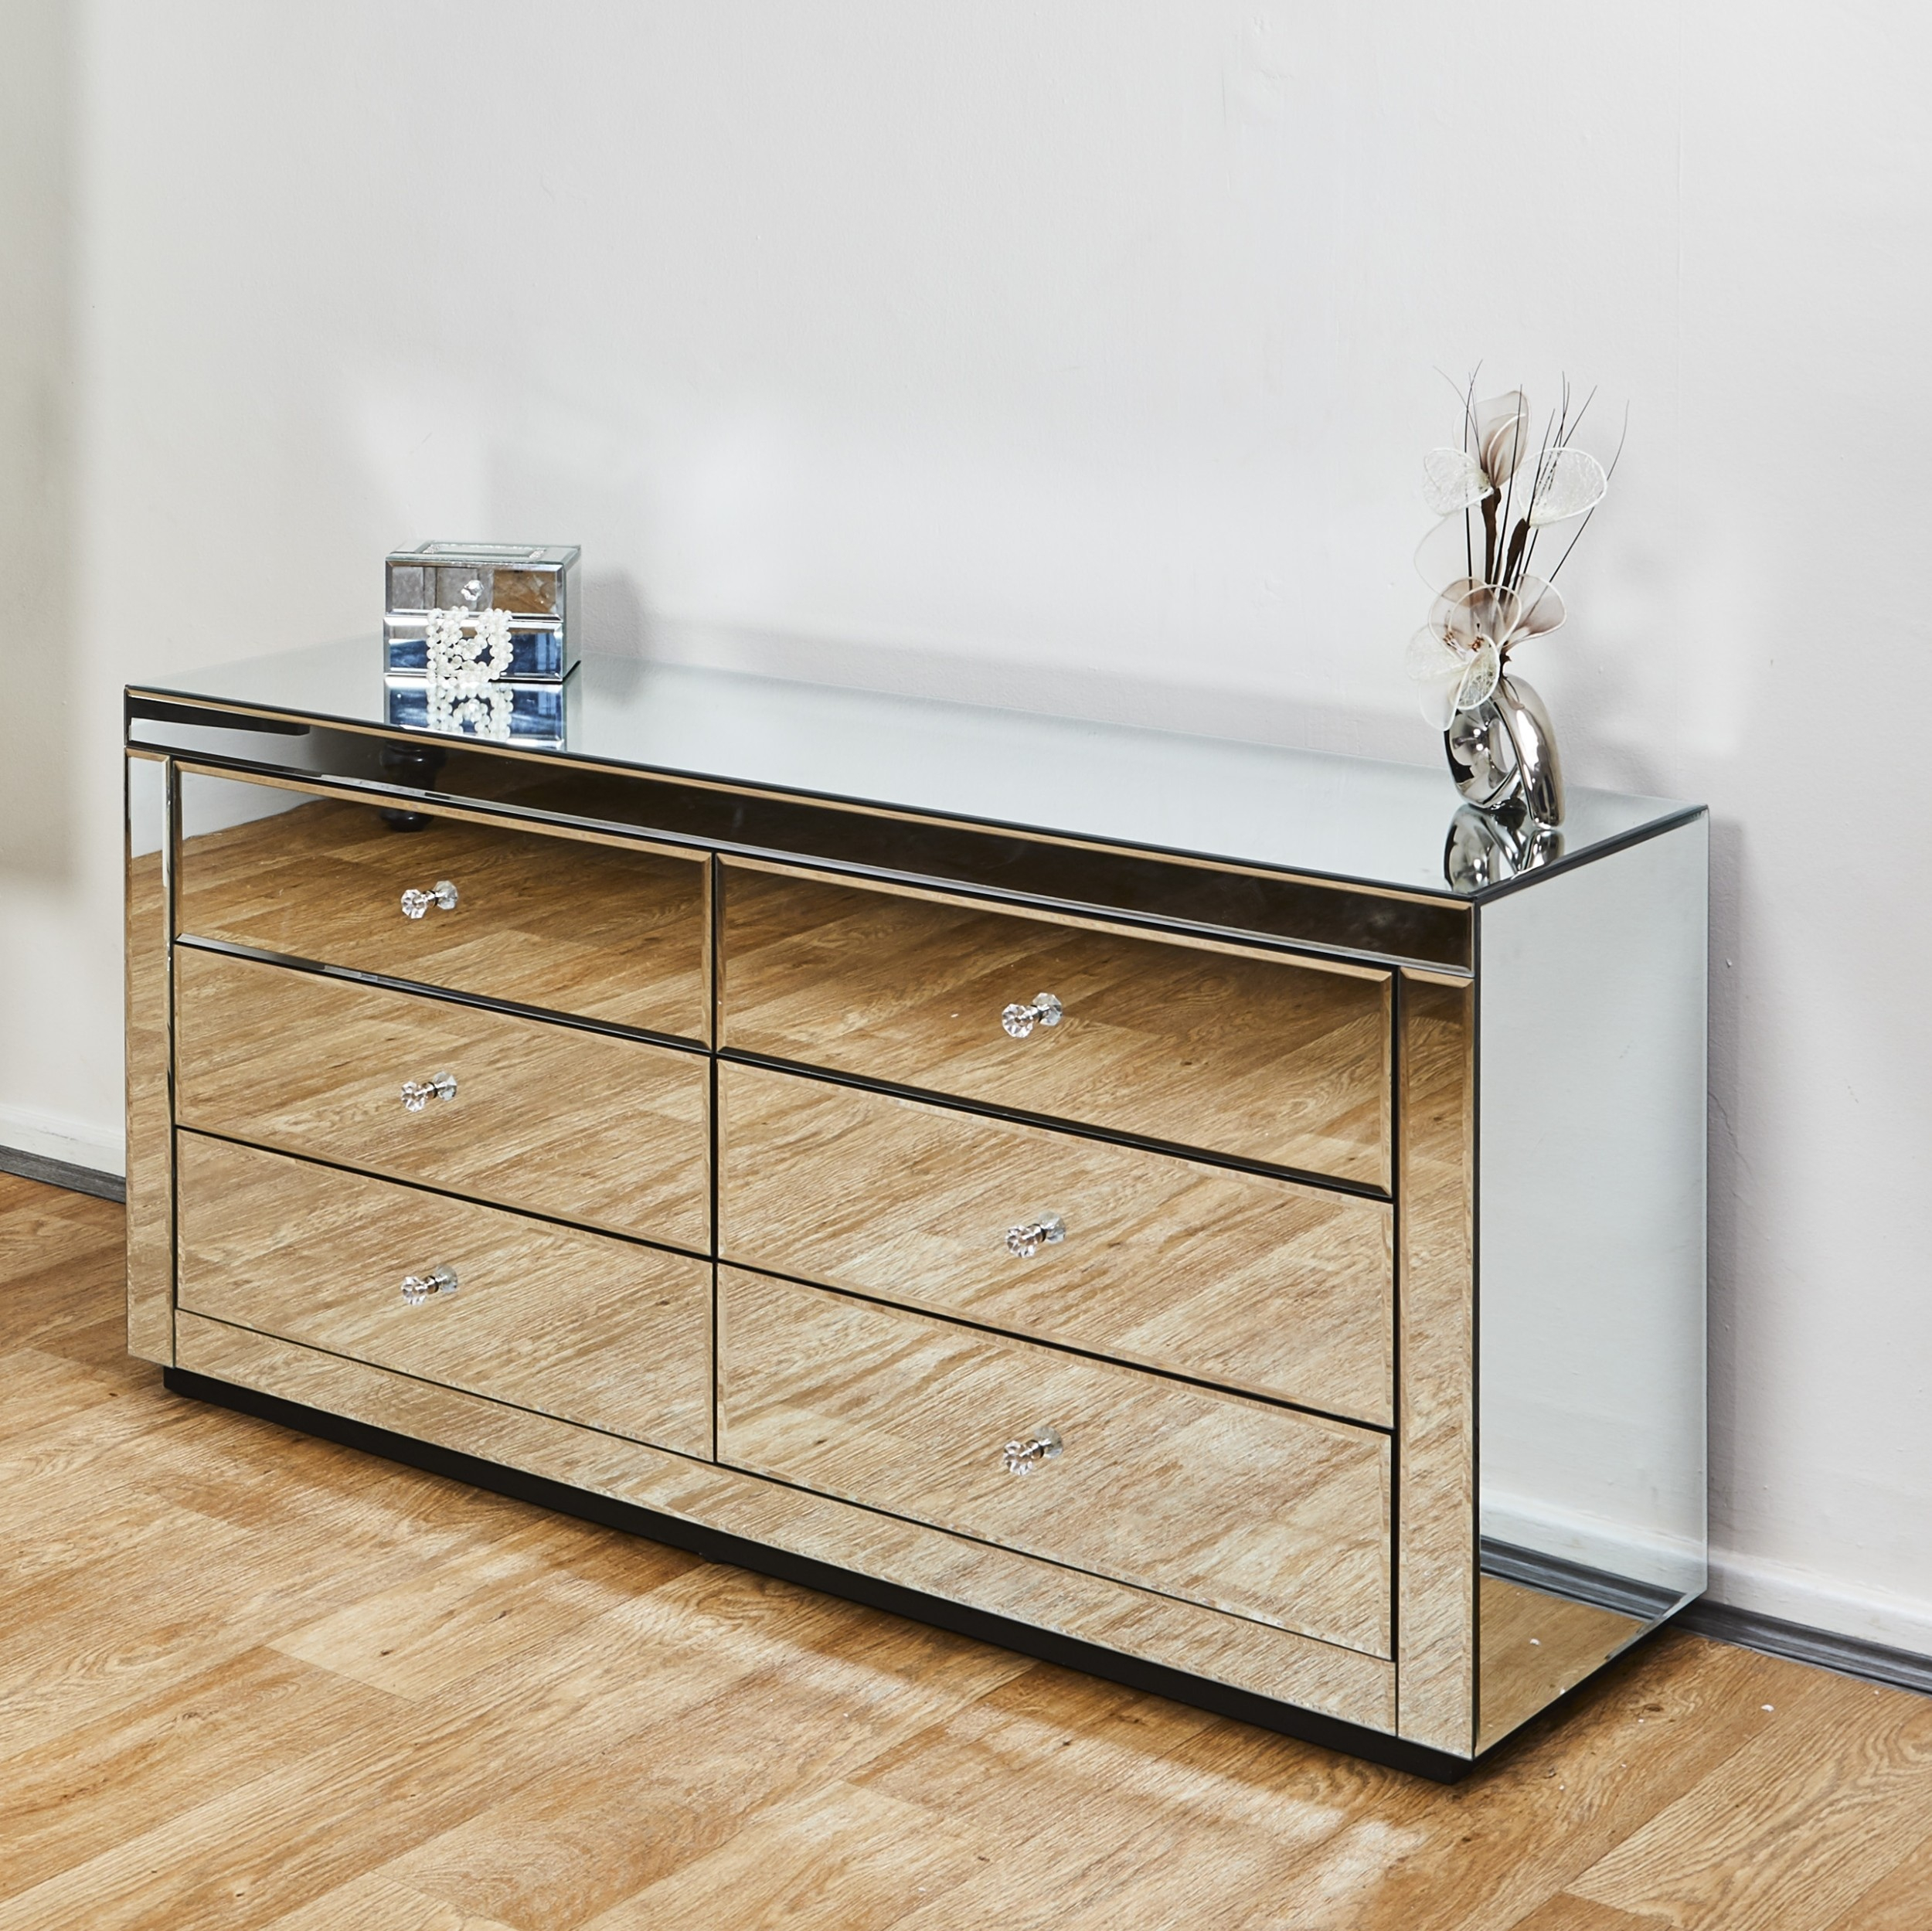 Details About Venetian Mirrored Chest 6drawers Modern Bedroom Storage Lounge Furniture Cabinet with Modern Bedroom Storage